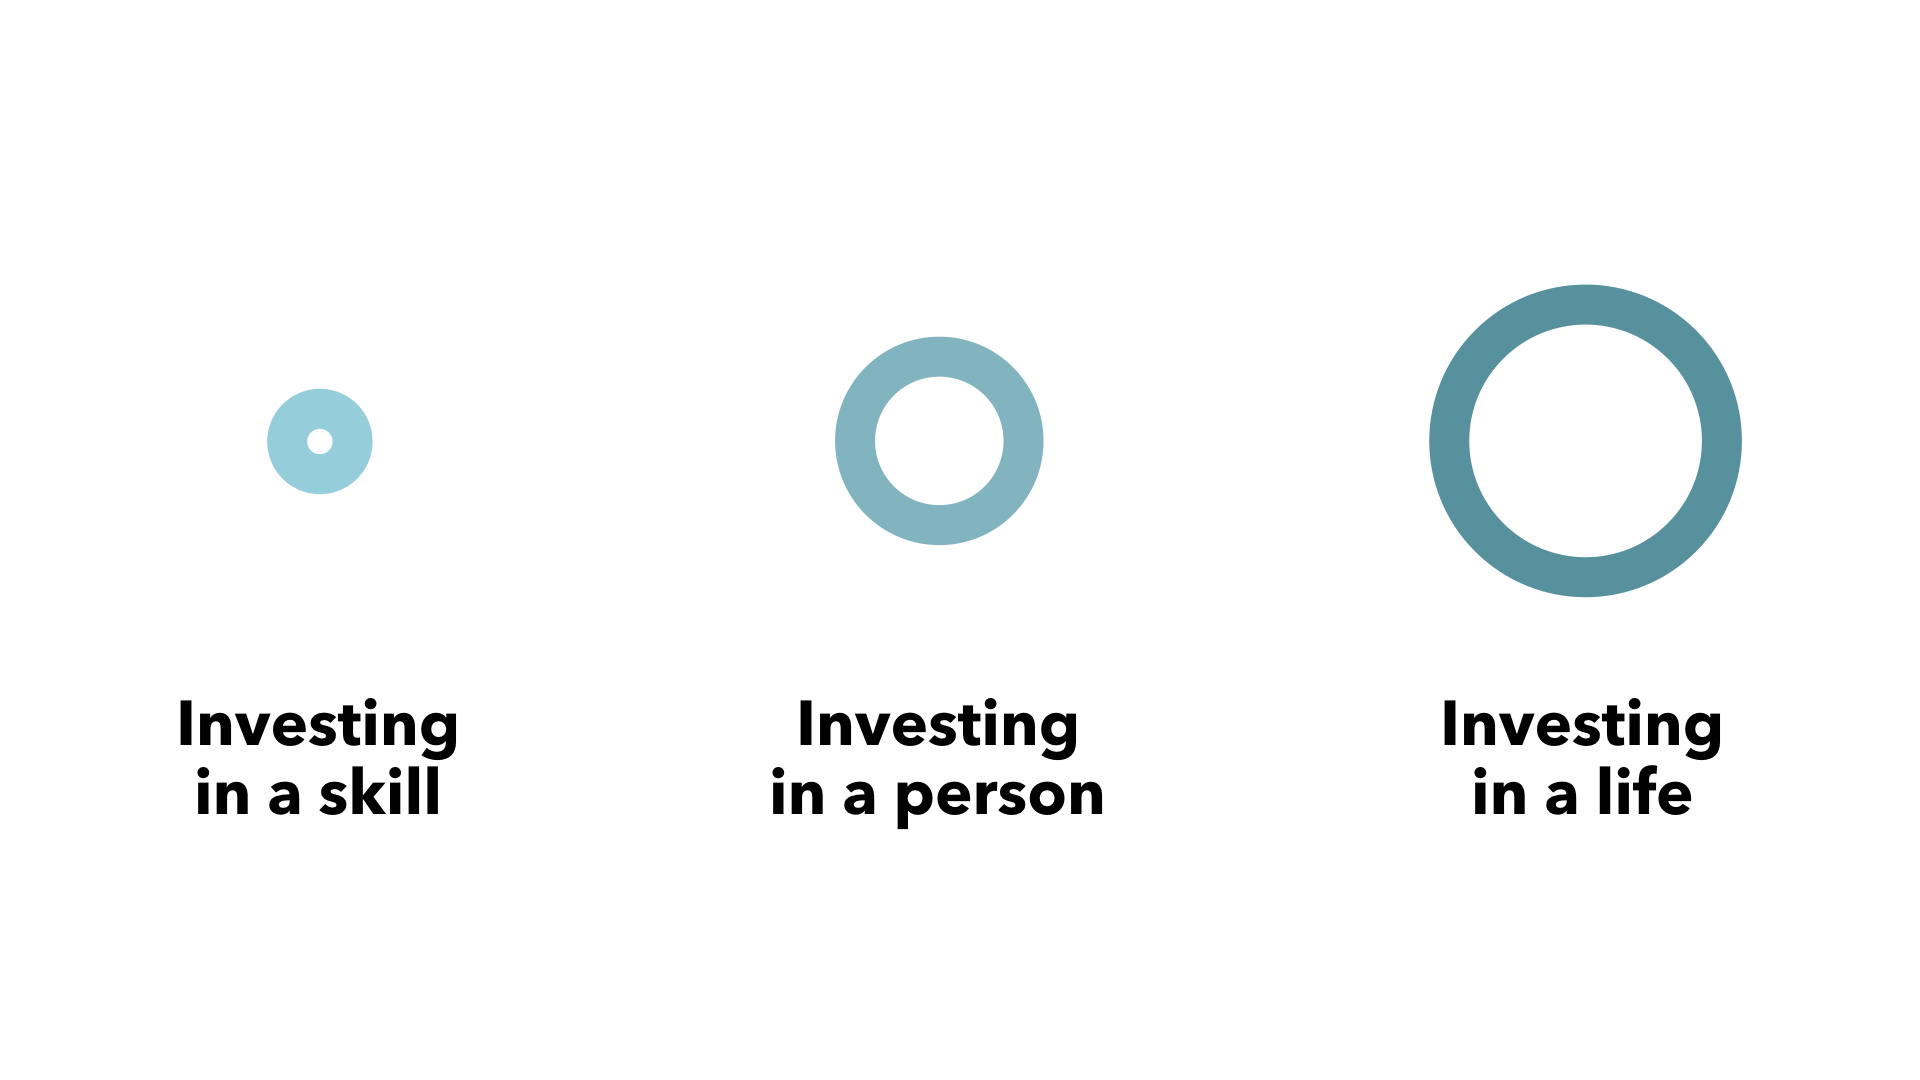 There are three rings to this concept: Investing in a skill. Investing in a person. Investing in a life.